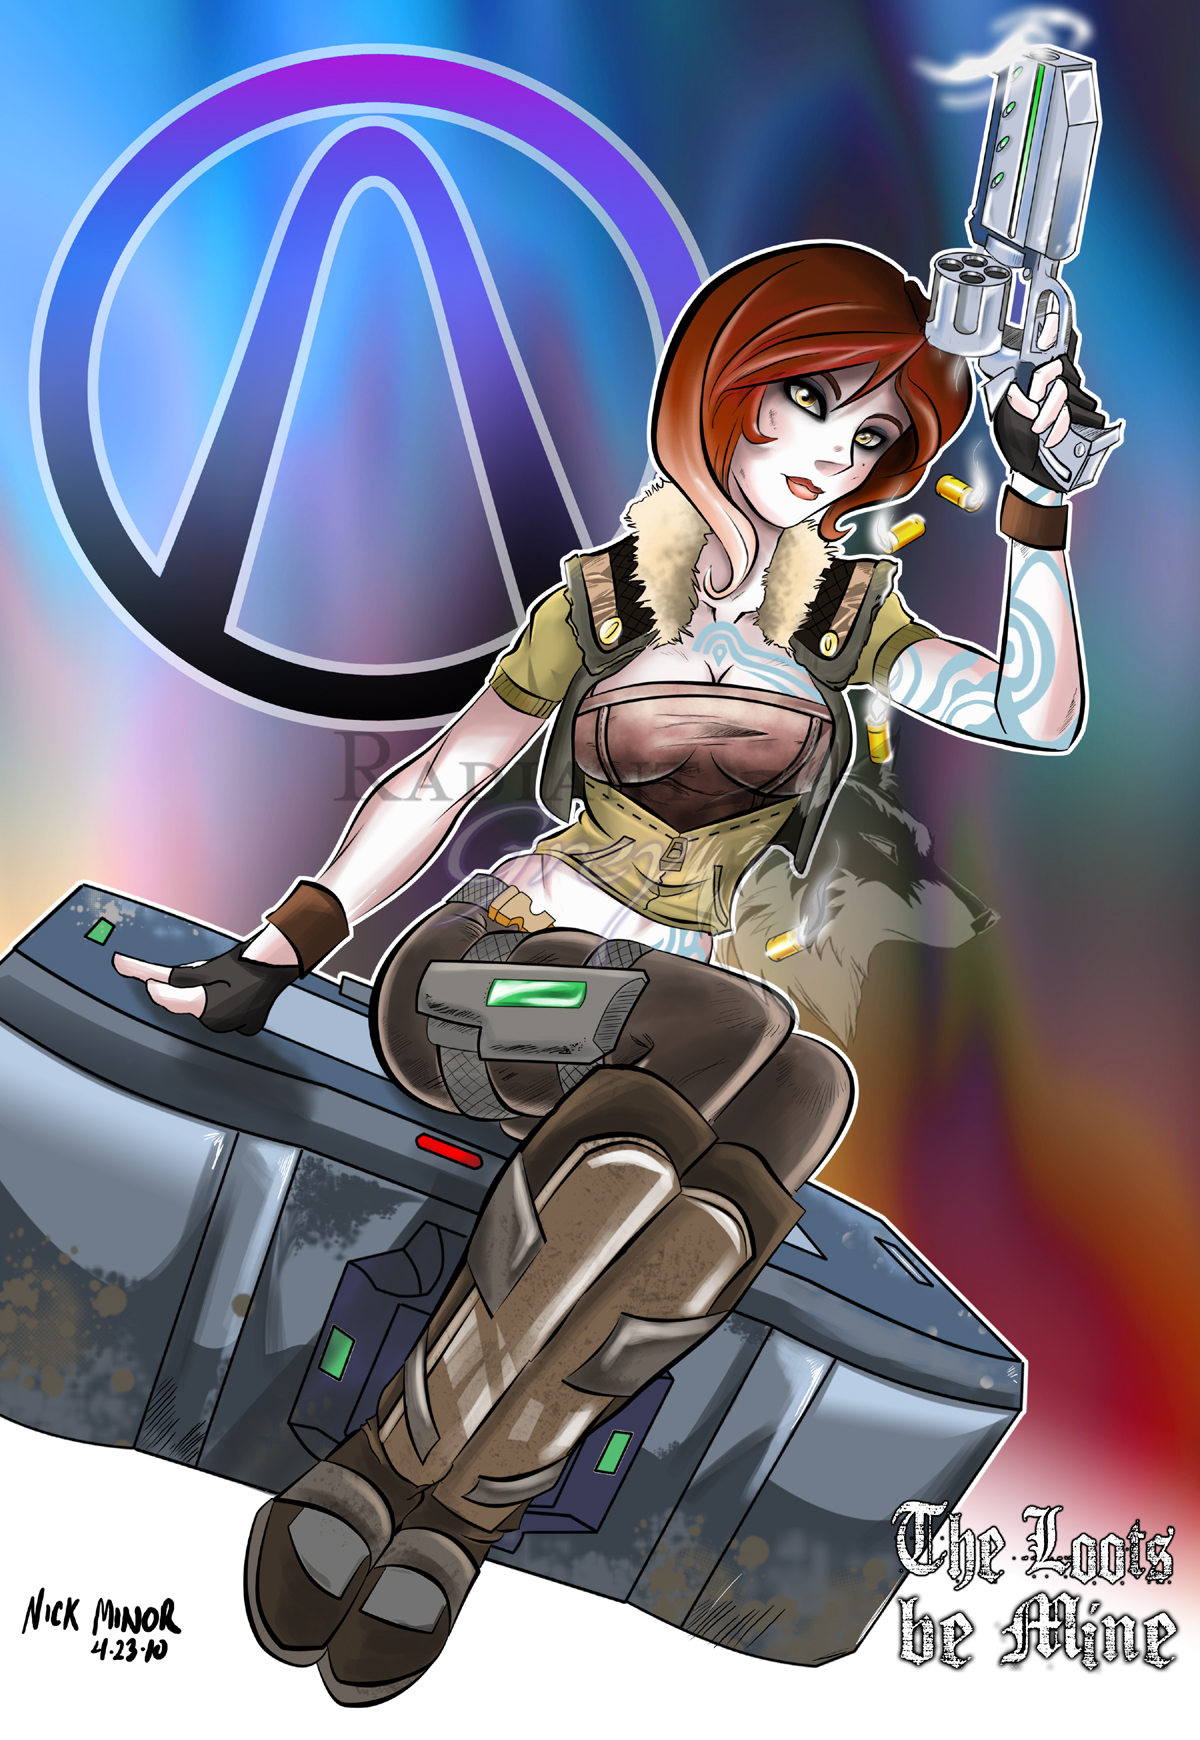 Lilith vore borderlands hentai image